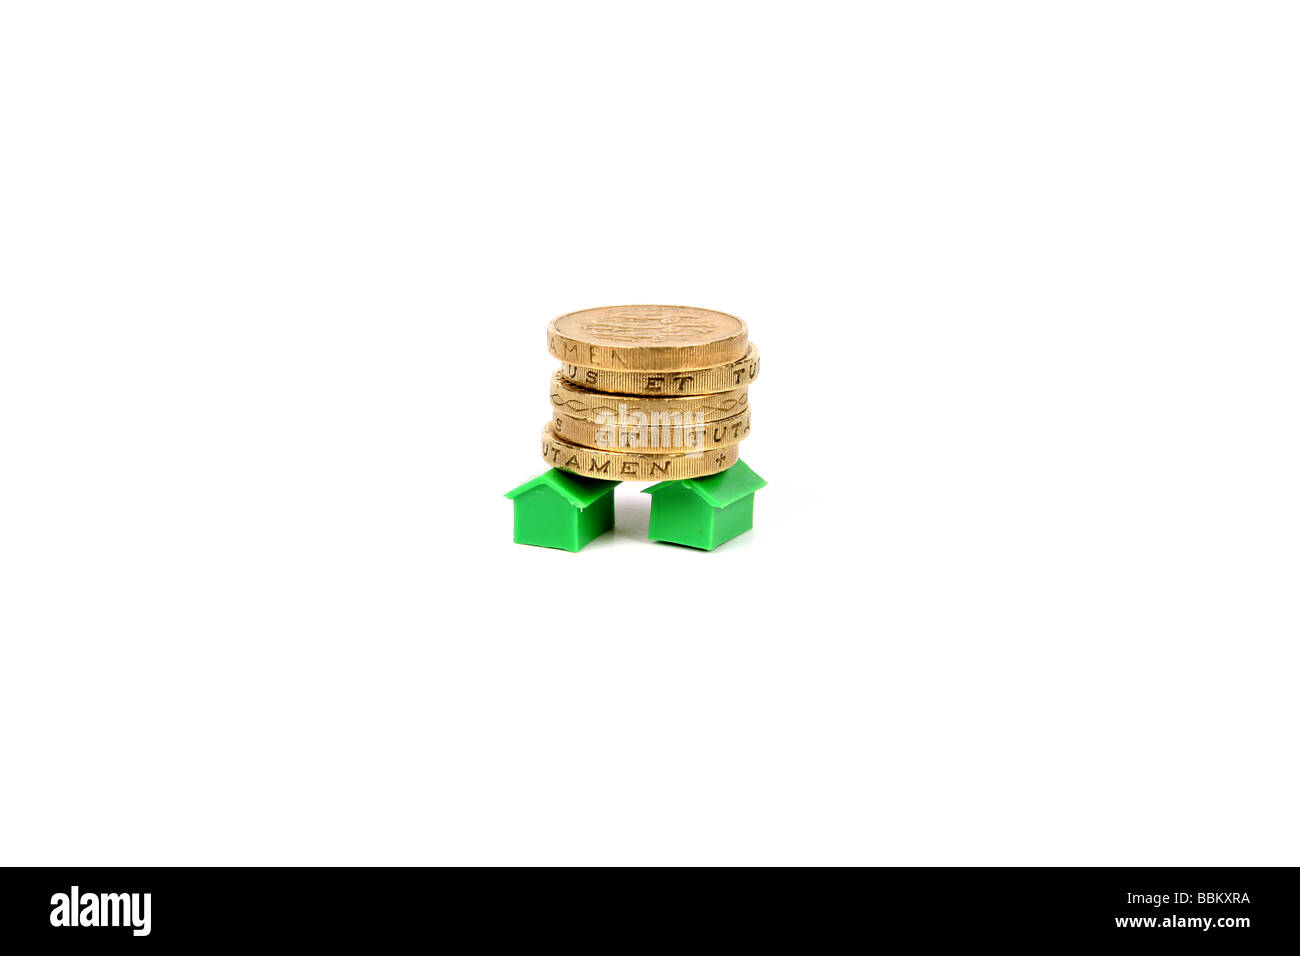 Money market home value concept photo - Stock Image